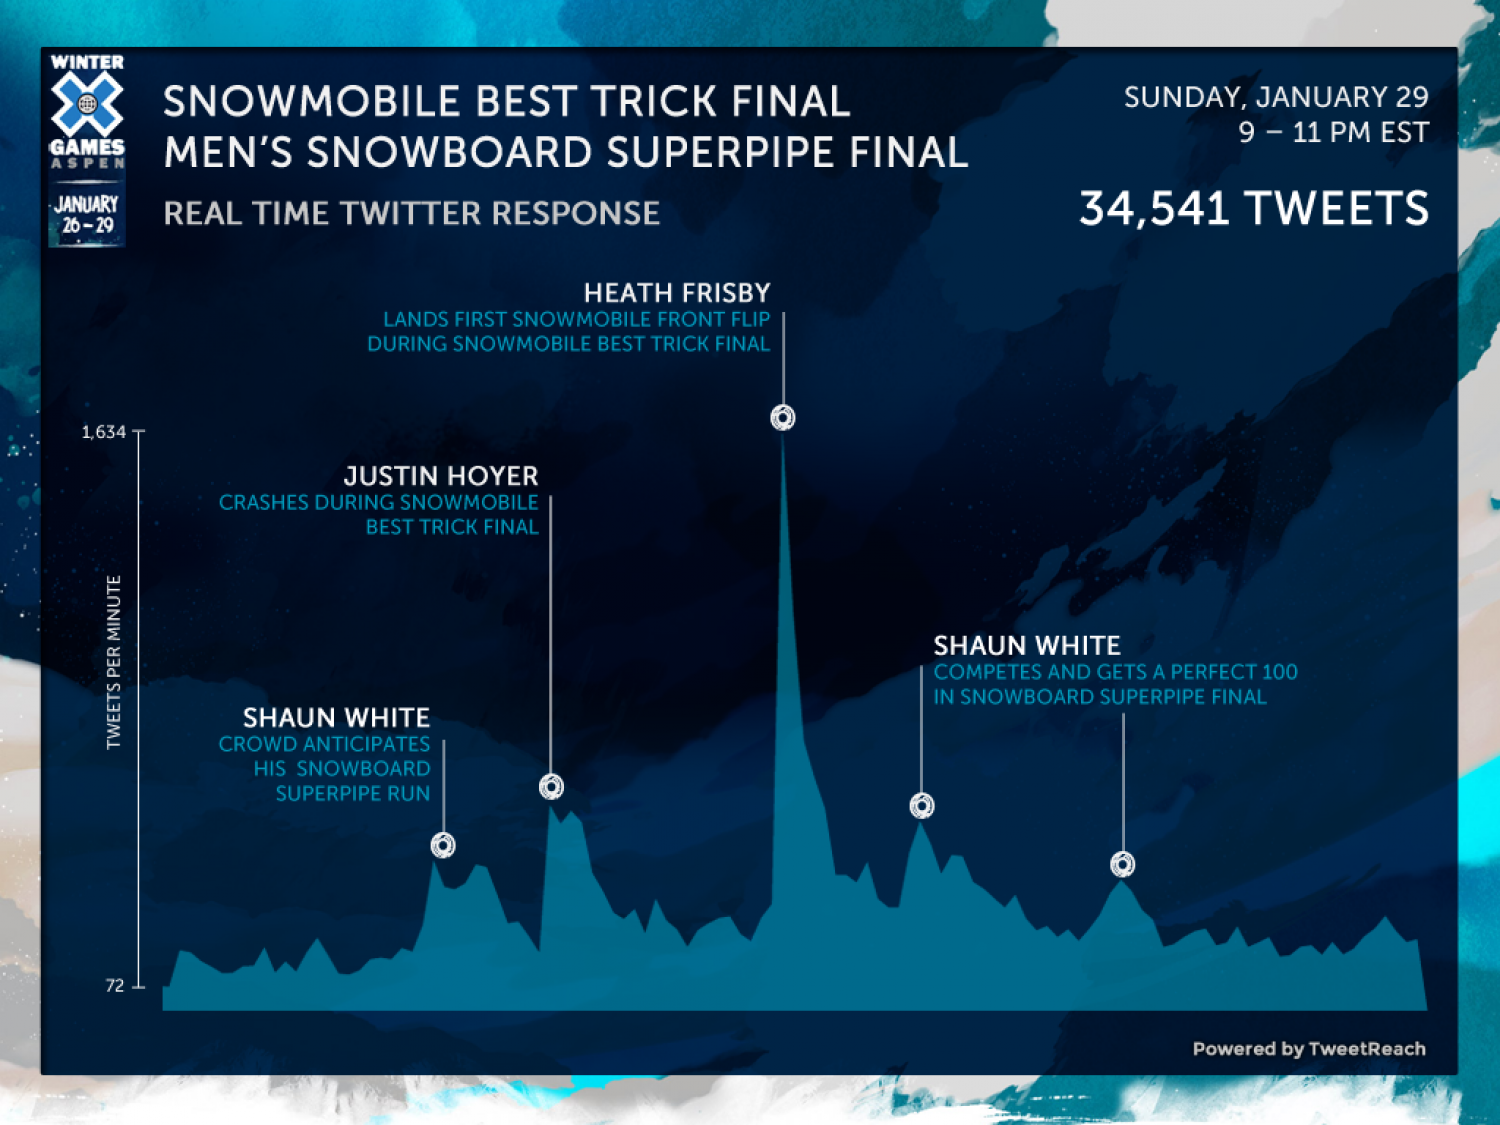 Winter X Games Real Time Twitter Response Infographic